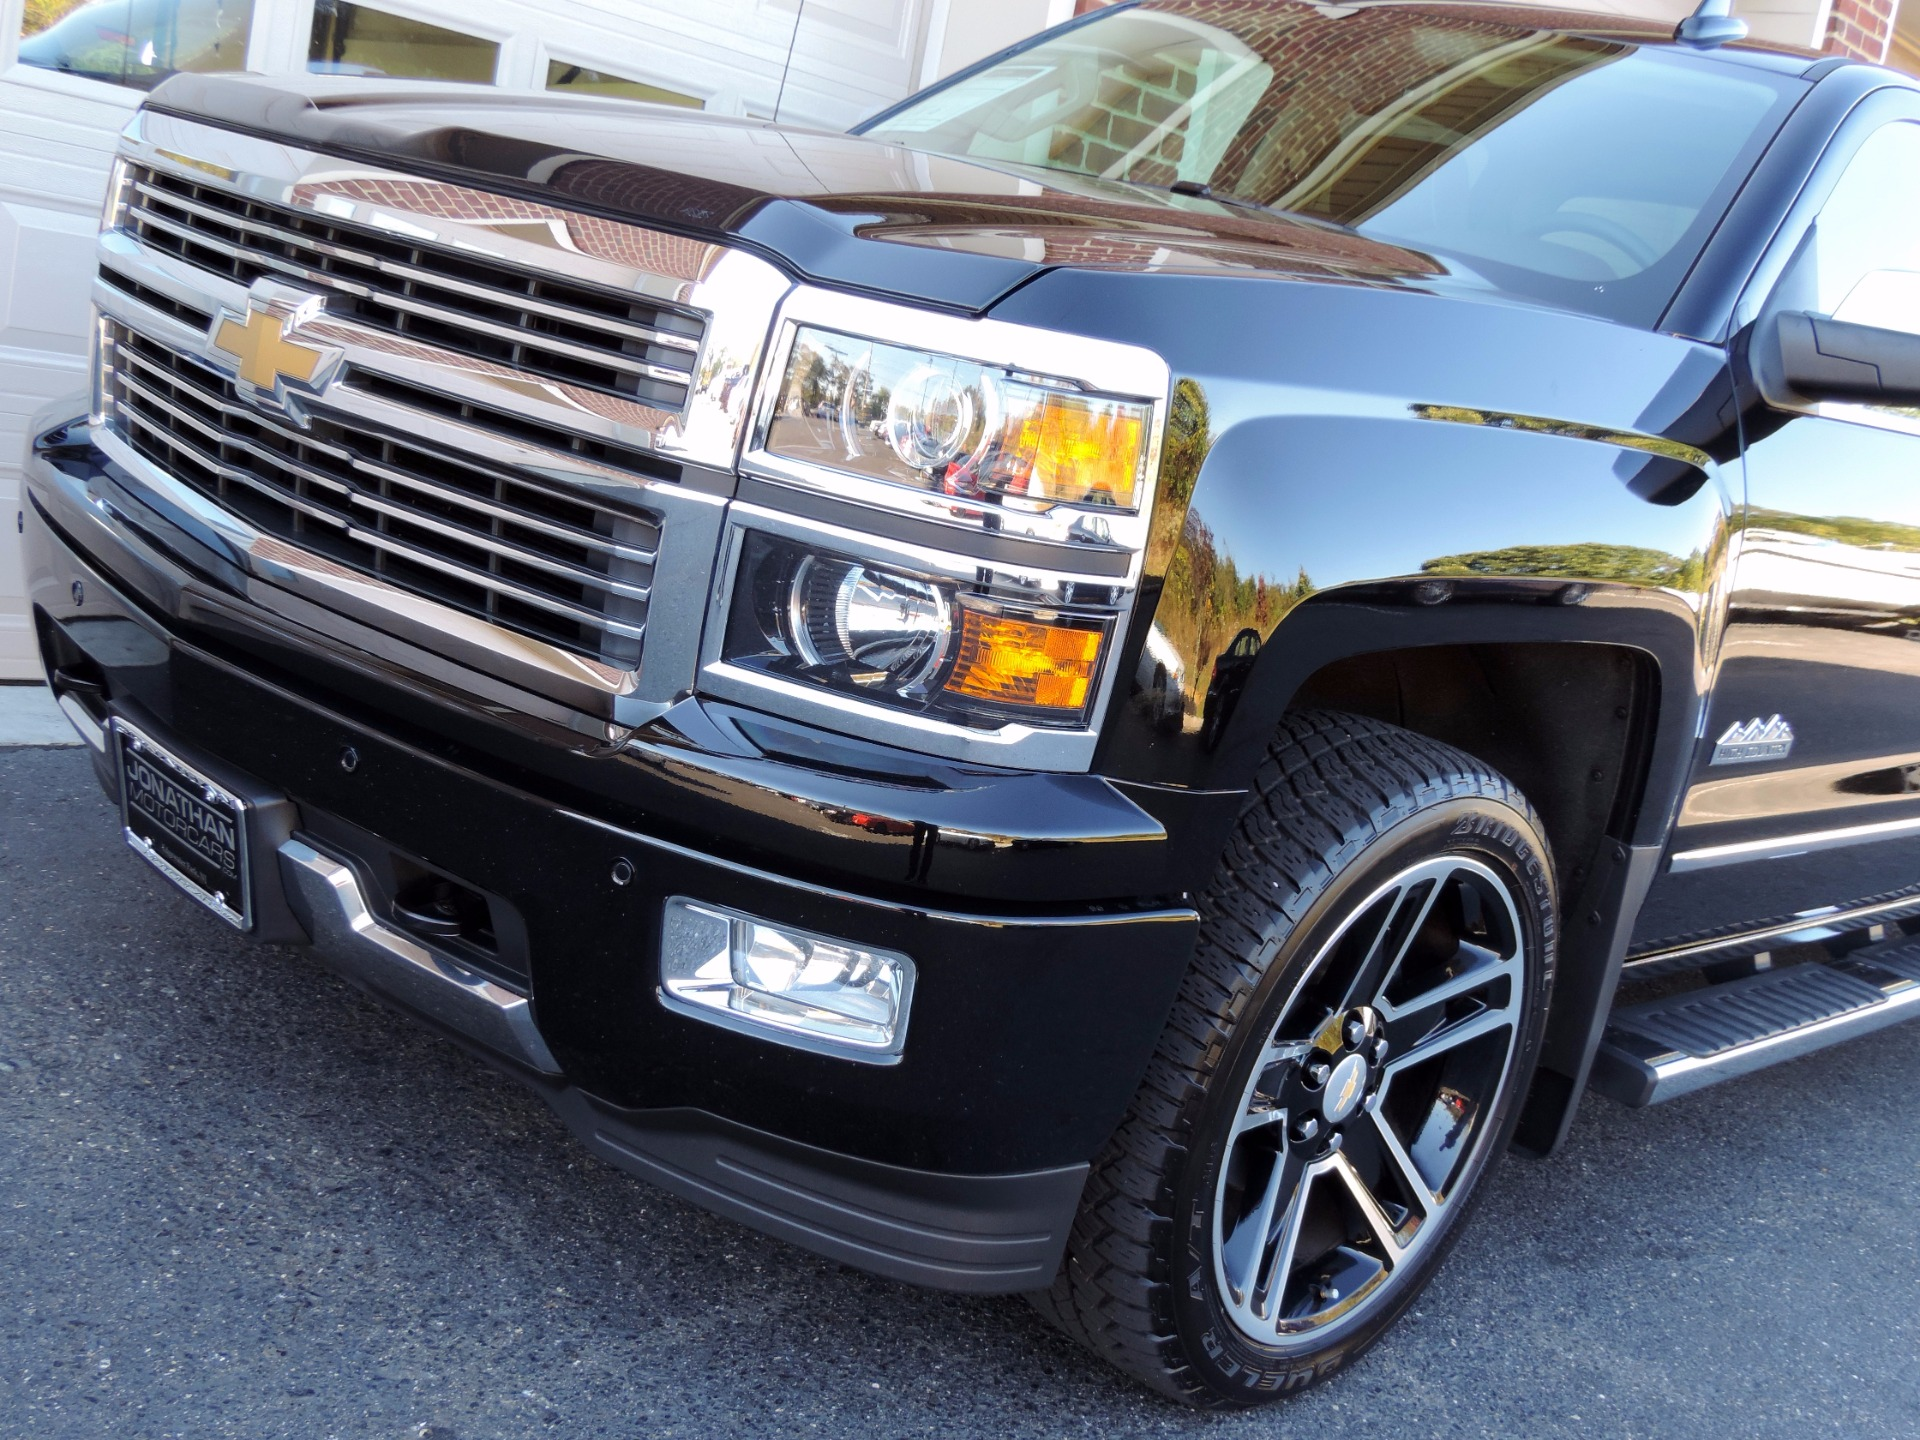 2015 chevrolet silverado 1500 high country stock 480322 for sale near edgewater park nj nj. Black Bedroom Furniture Sets. Home Design Ideas